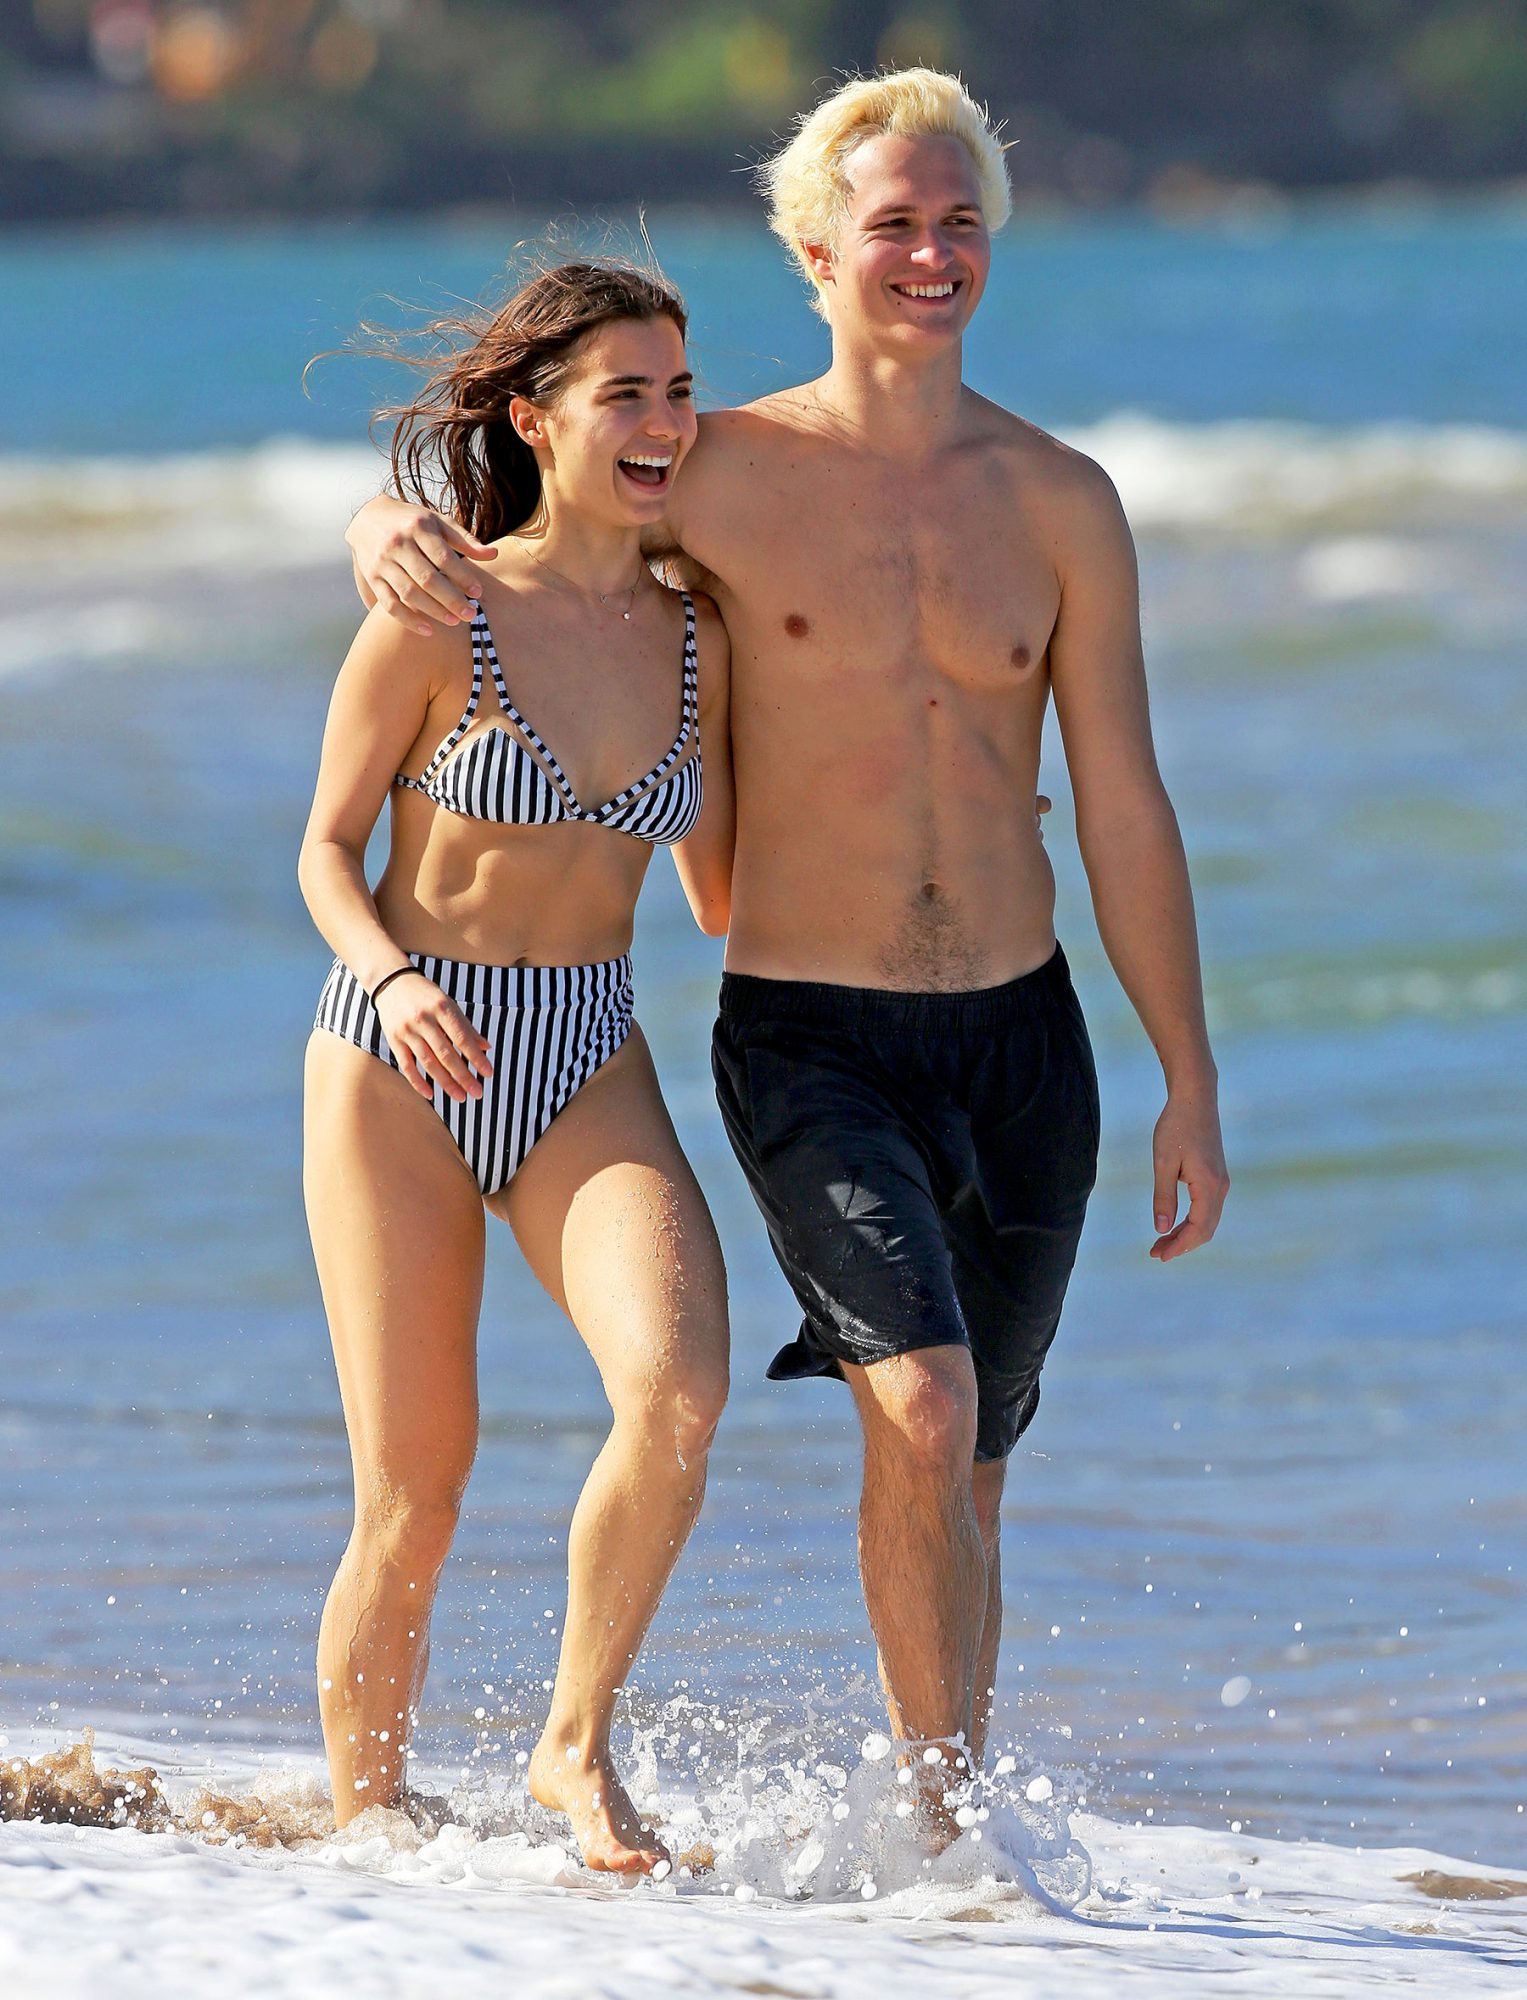 EXCLUSIVE: Ansel Elgort And Girlfriend Violetta Komyshan Pack On The PDA While On Holiday In Hawaii